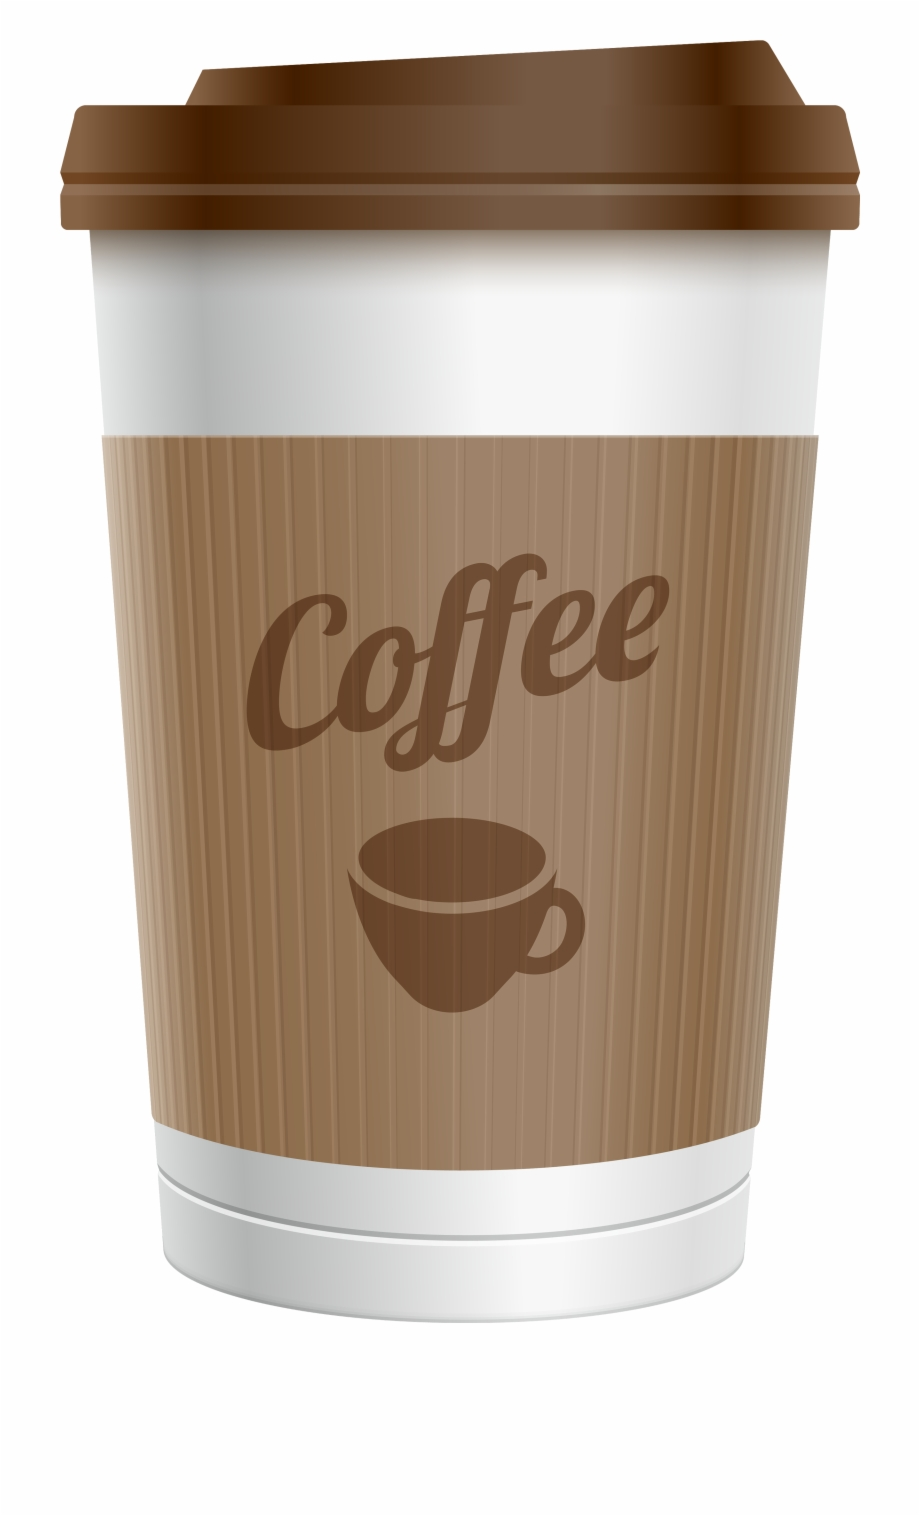 Coffee Clipart Plastic Cup Pencil And In Color Coffee.